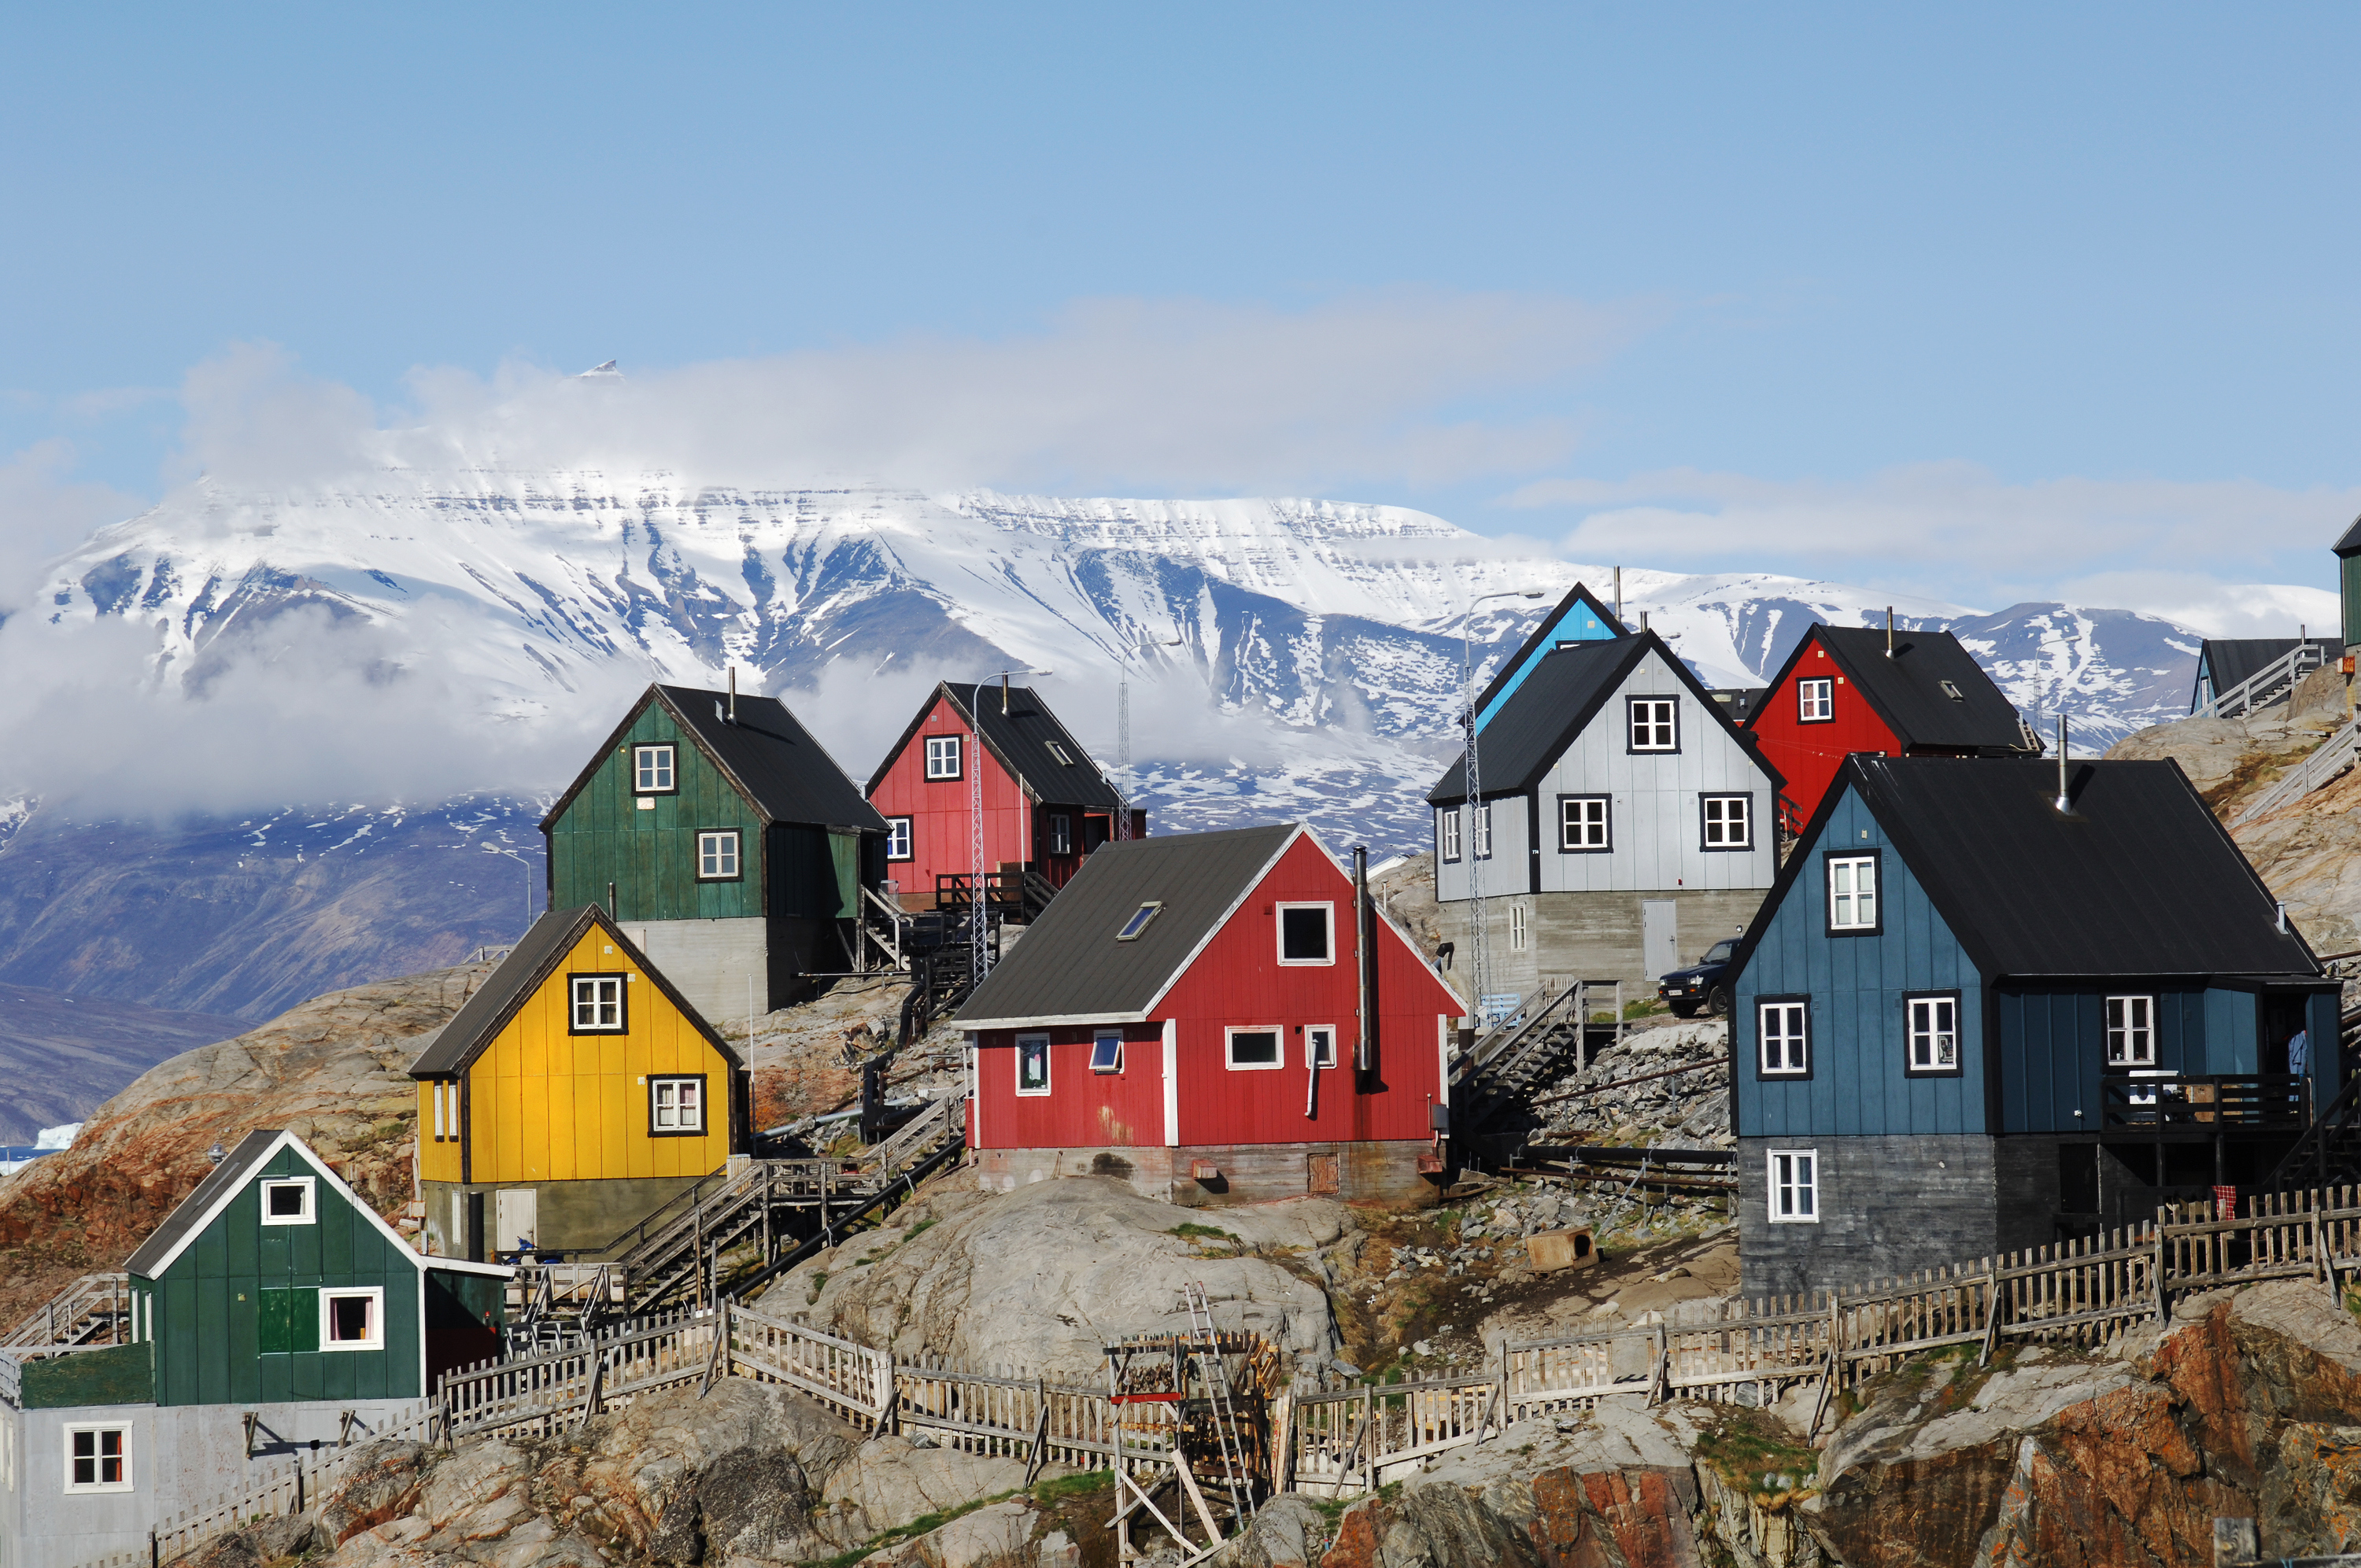 Homes on the island of Uummannaq, Greenland